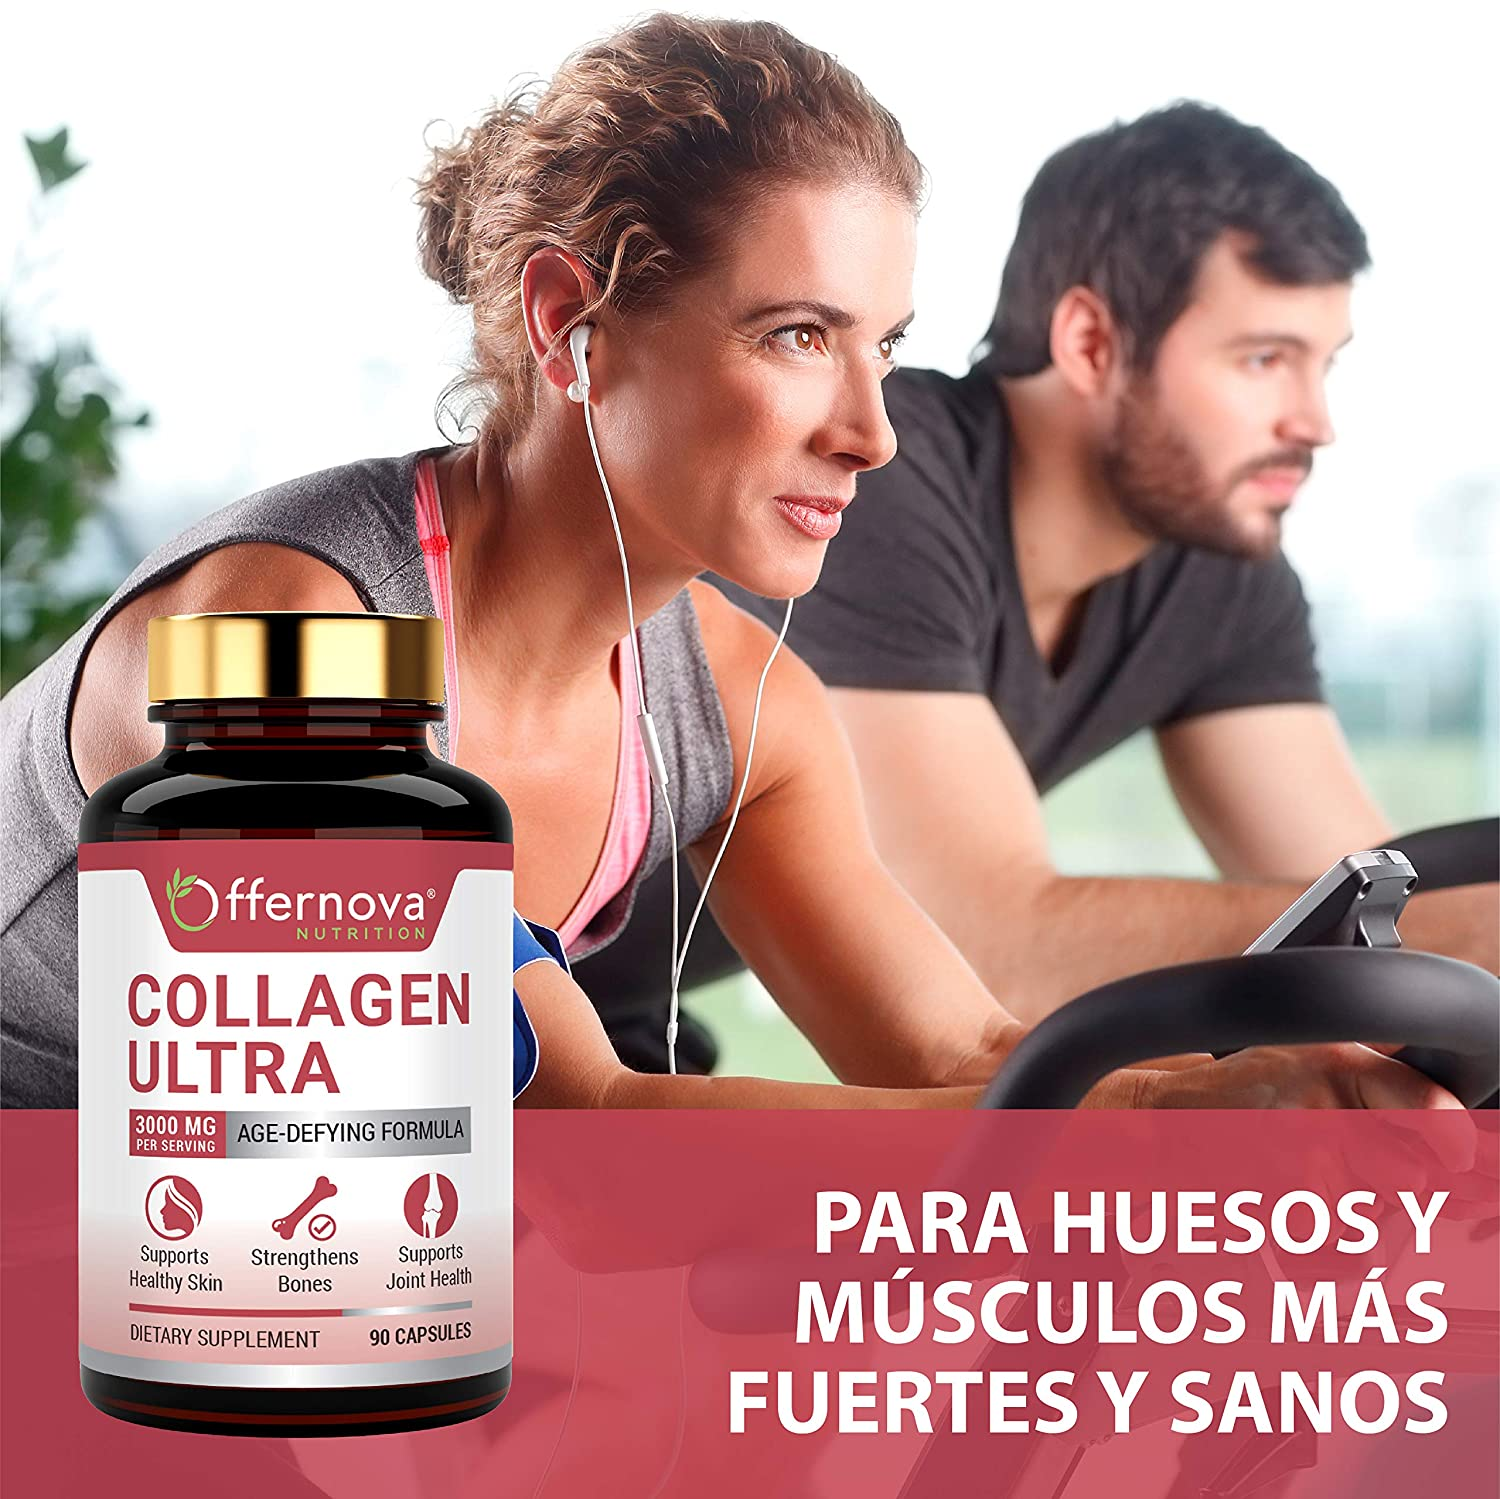 Hydrolyzed Collagen Capsules for Healthy Joints, Bones, Hair & Skin – Anti-Aging Bovine Collagen Peptides Pills for Women and Men – Pastillas de ...